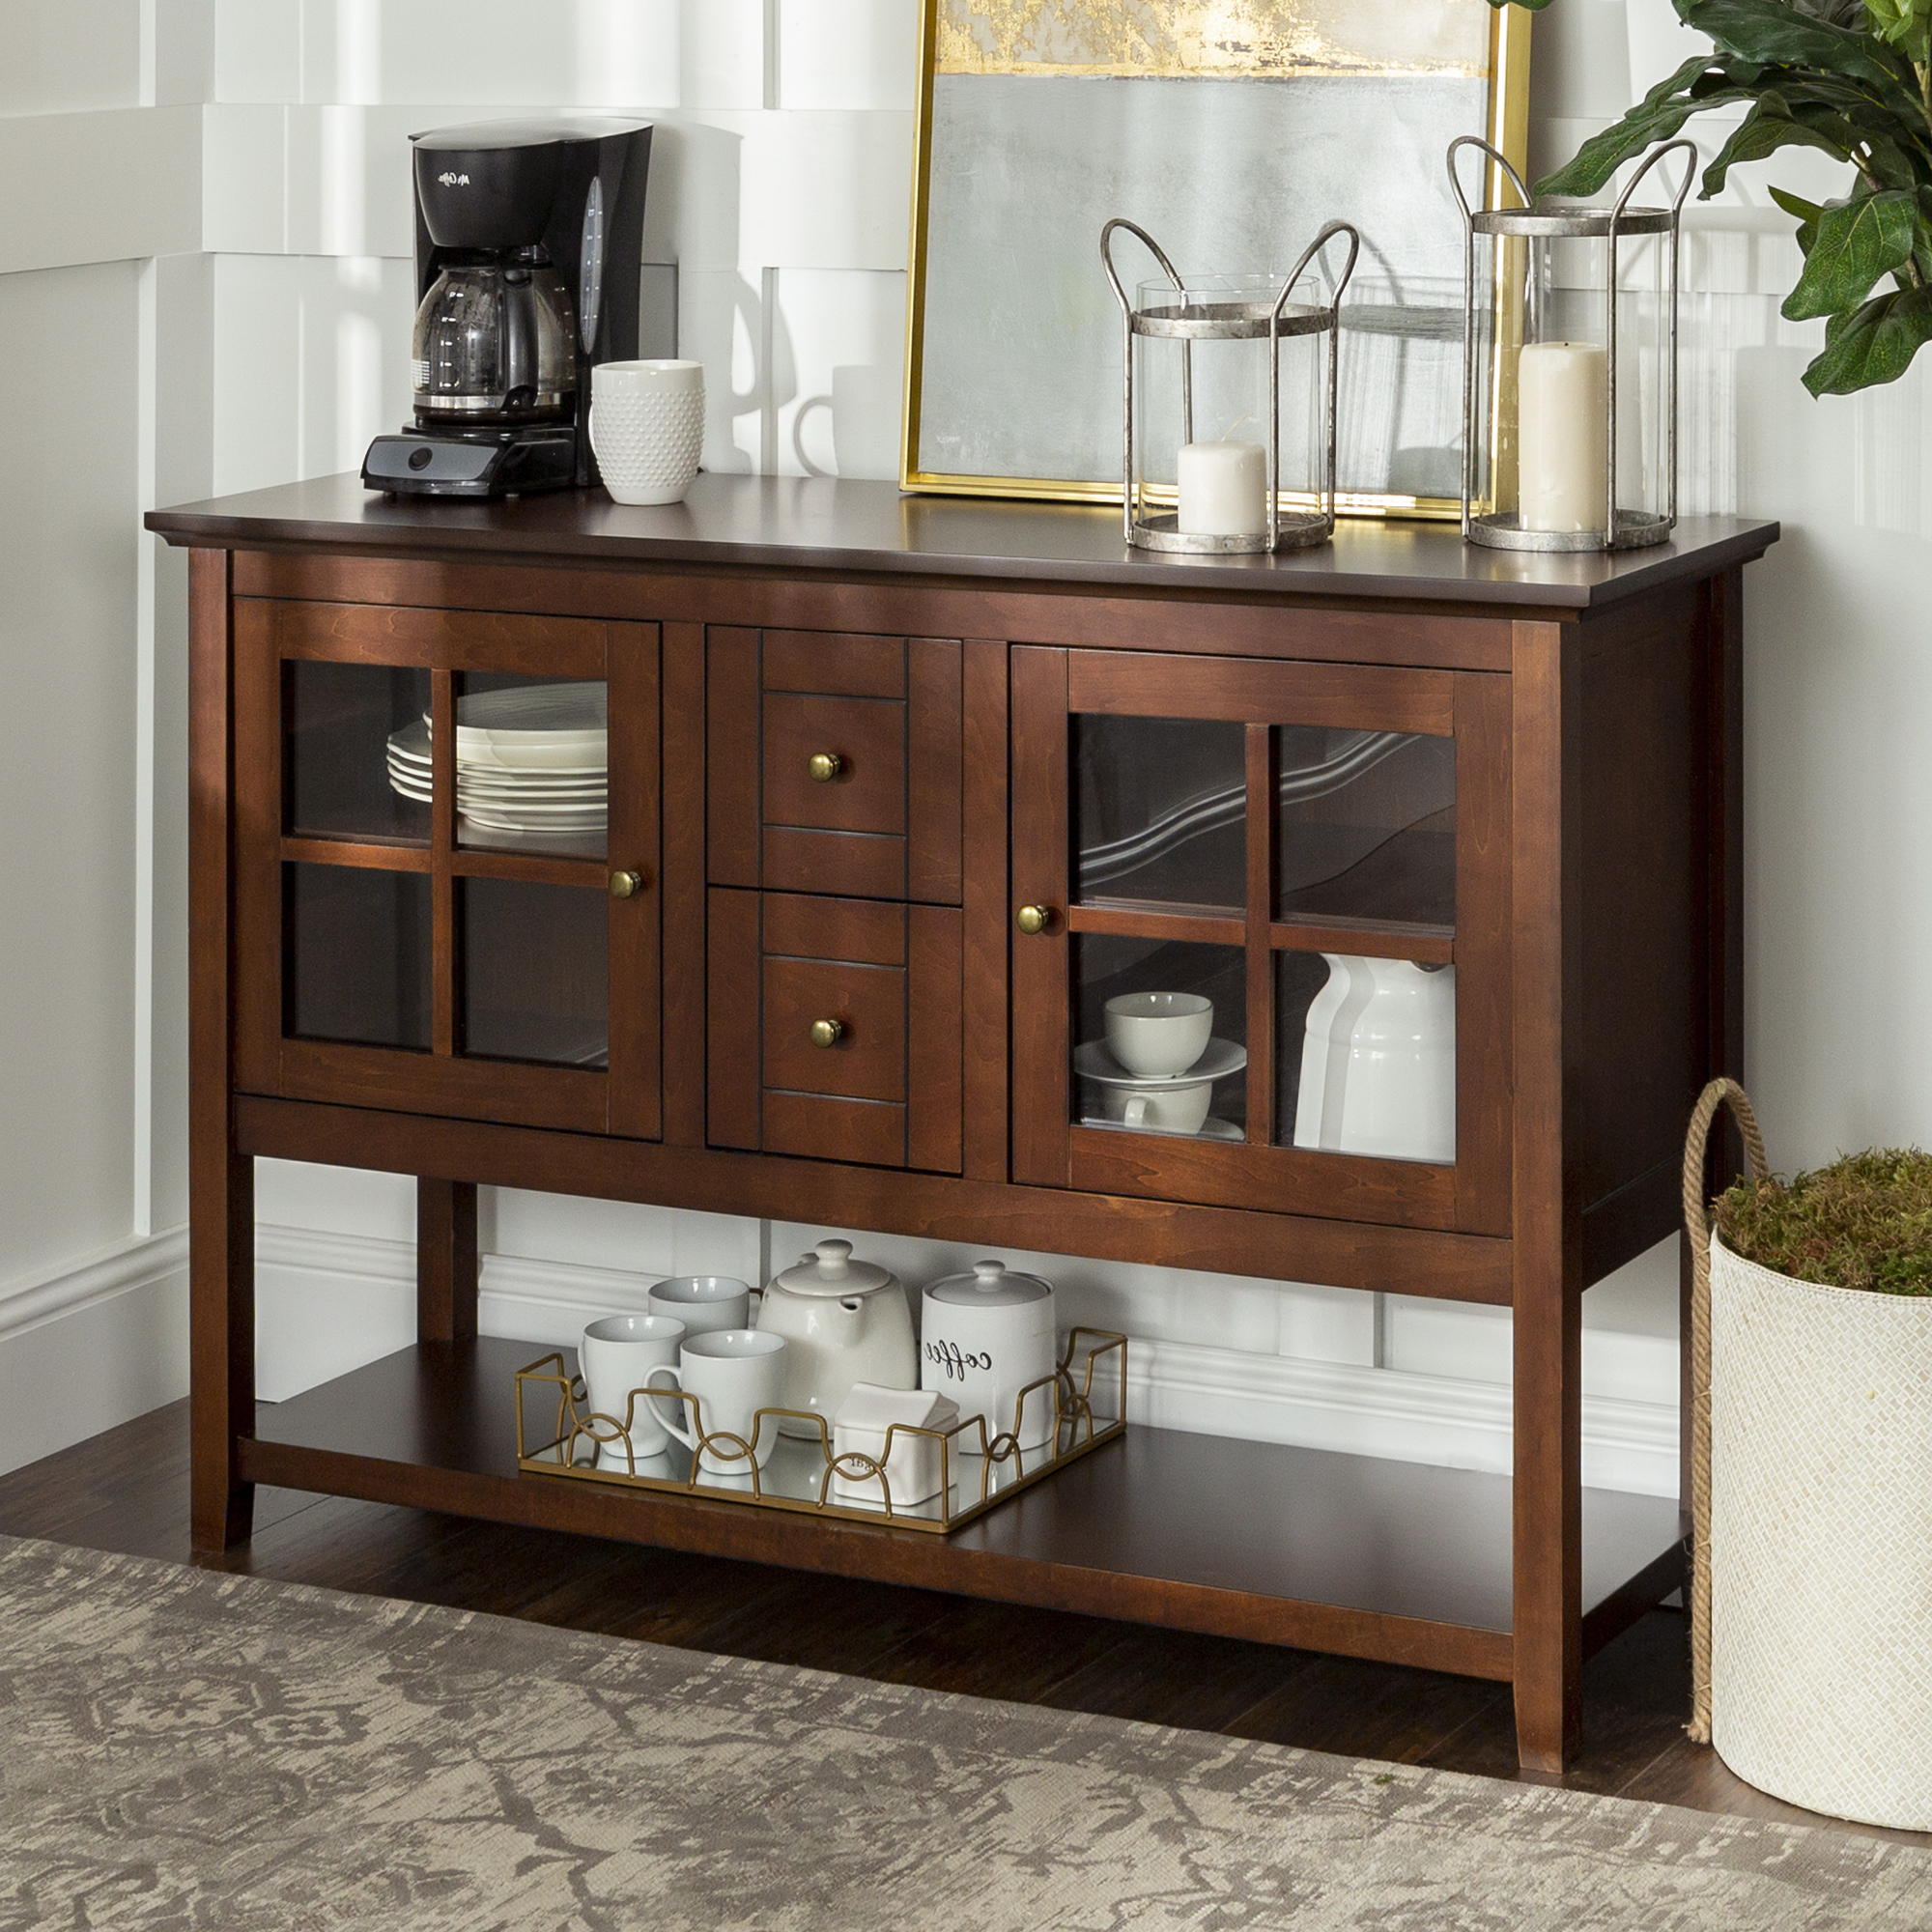 """Newest 52"""" Wood Console Table Buffet Tv Stand For Tv's Up To 55 Regarding Twila Tv Stands For Tvs Up To 55"""" (View 14 of 25)"""